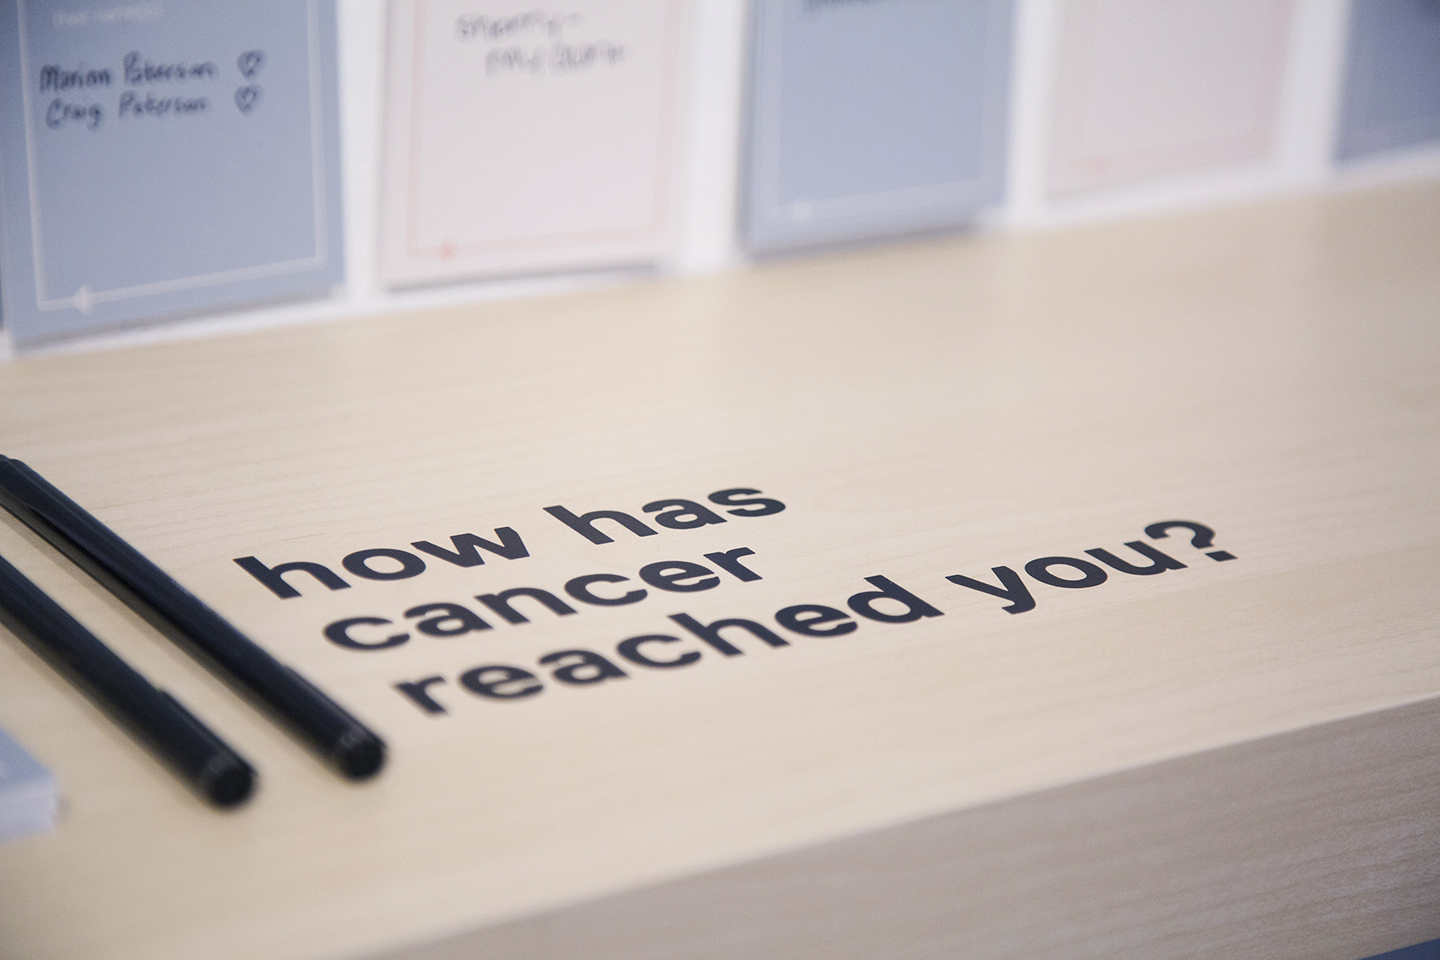 Black letters on a wooden shelf ask visitors 'how has cancer reached you?'